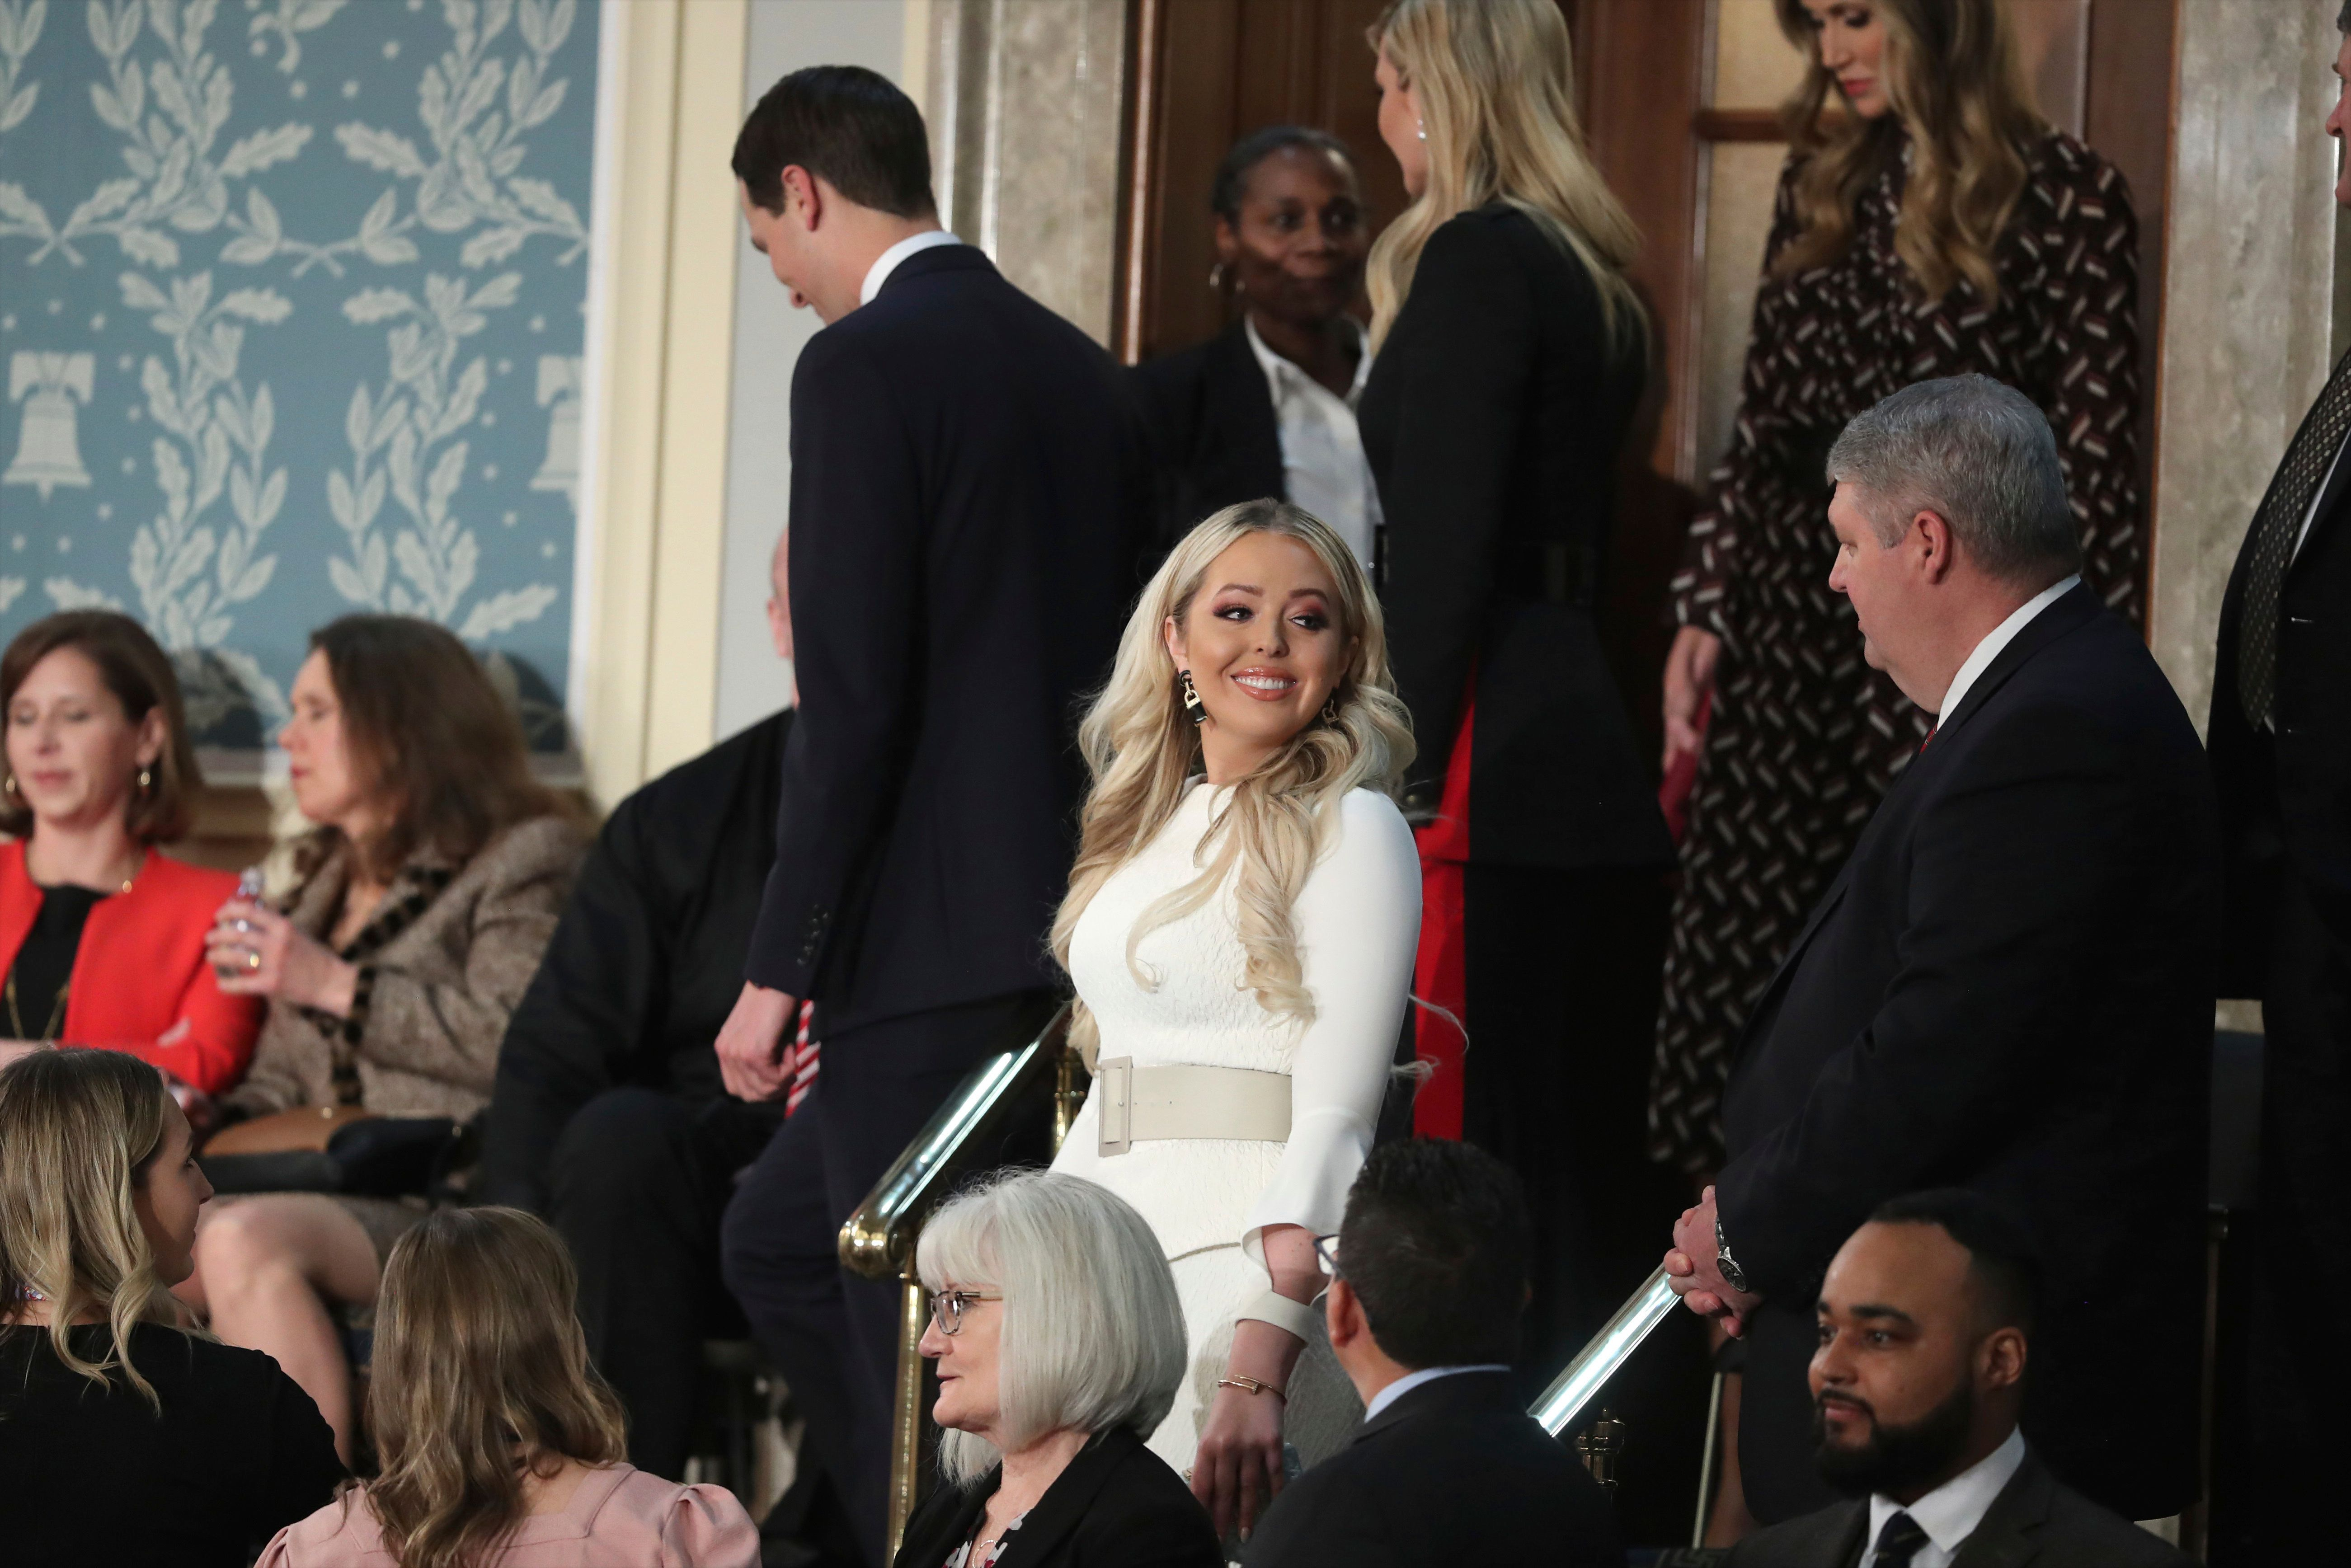 Tiffany Trump, front center, arrives to hear President Donald Trump deliver his State of the Union address to a joint session of Congress on Capitol Hill in Washington, Tuesday, Feb. 5, 2019. (AP Photo/Andrew Harnik)